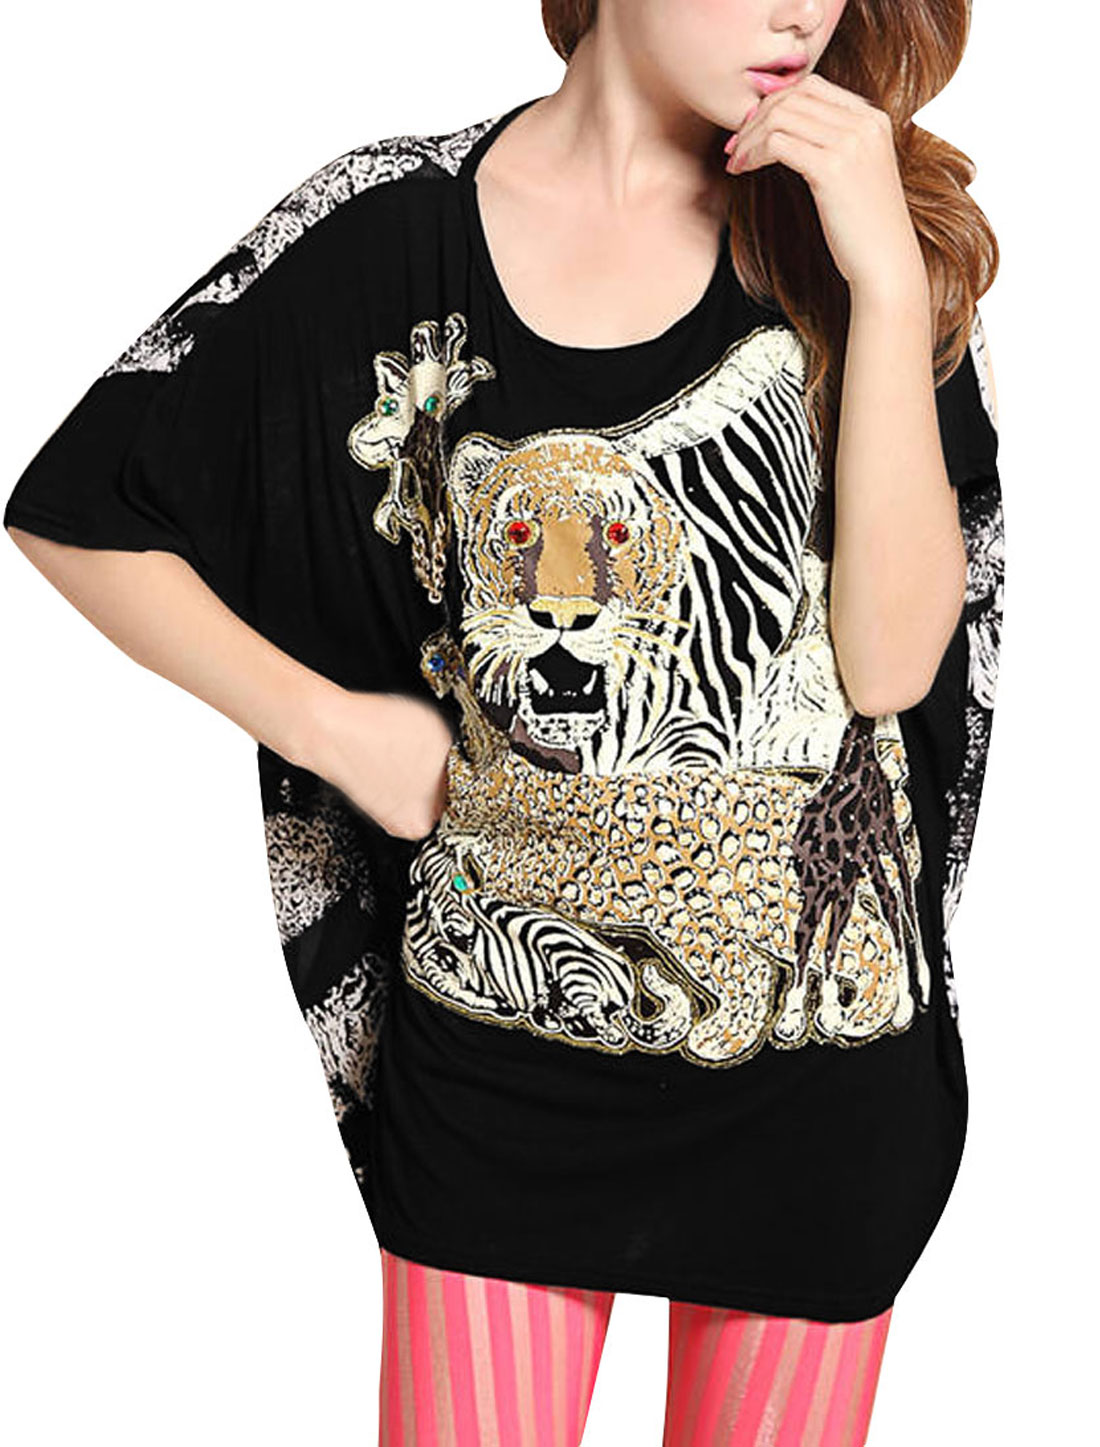 Ladies Round Neck Short Dolman Sleeve Tiger Pattern Design Black Shirt M